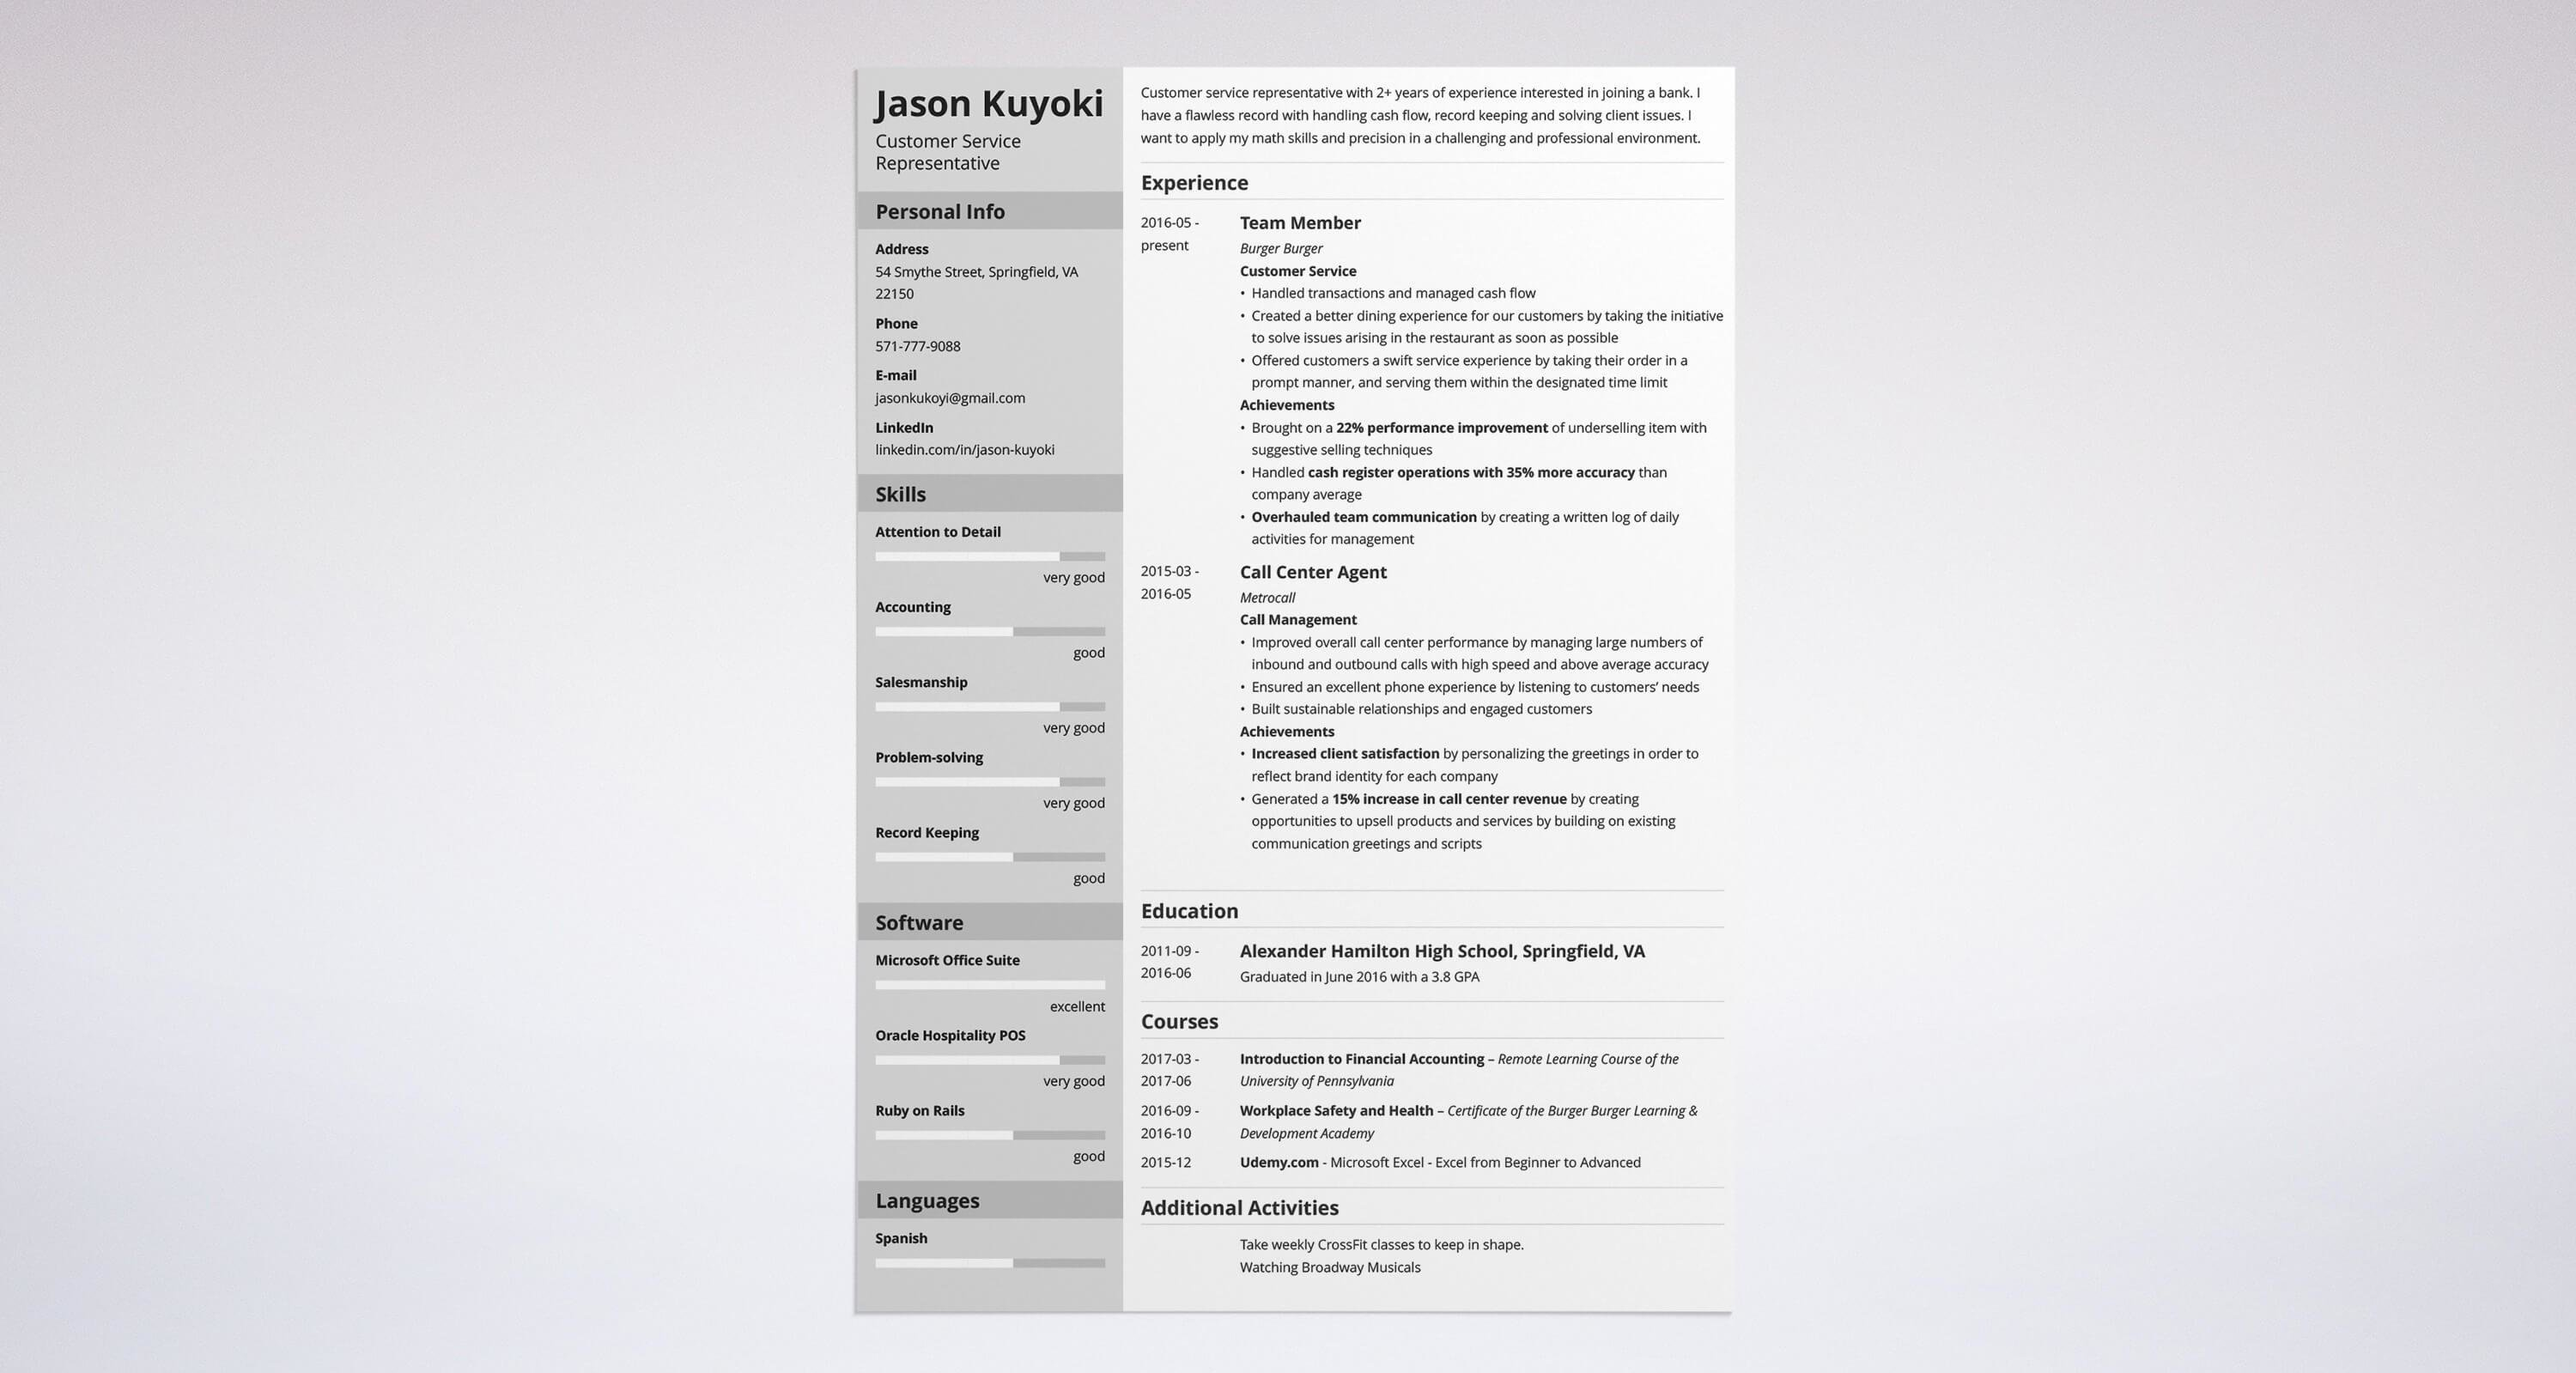 Bank Teller Resume: Sample & Complete Guide [+20 Examples]